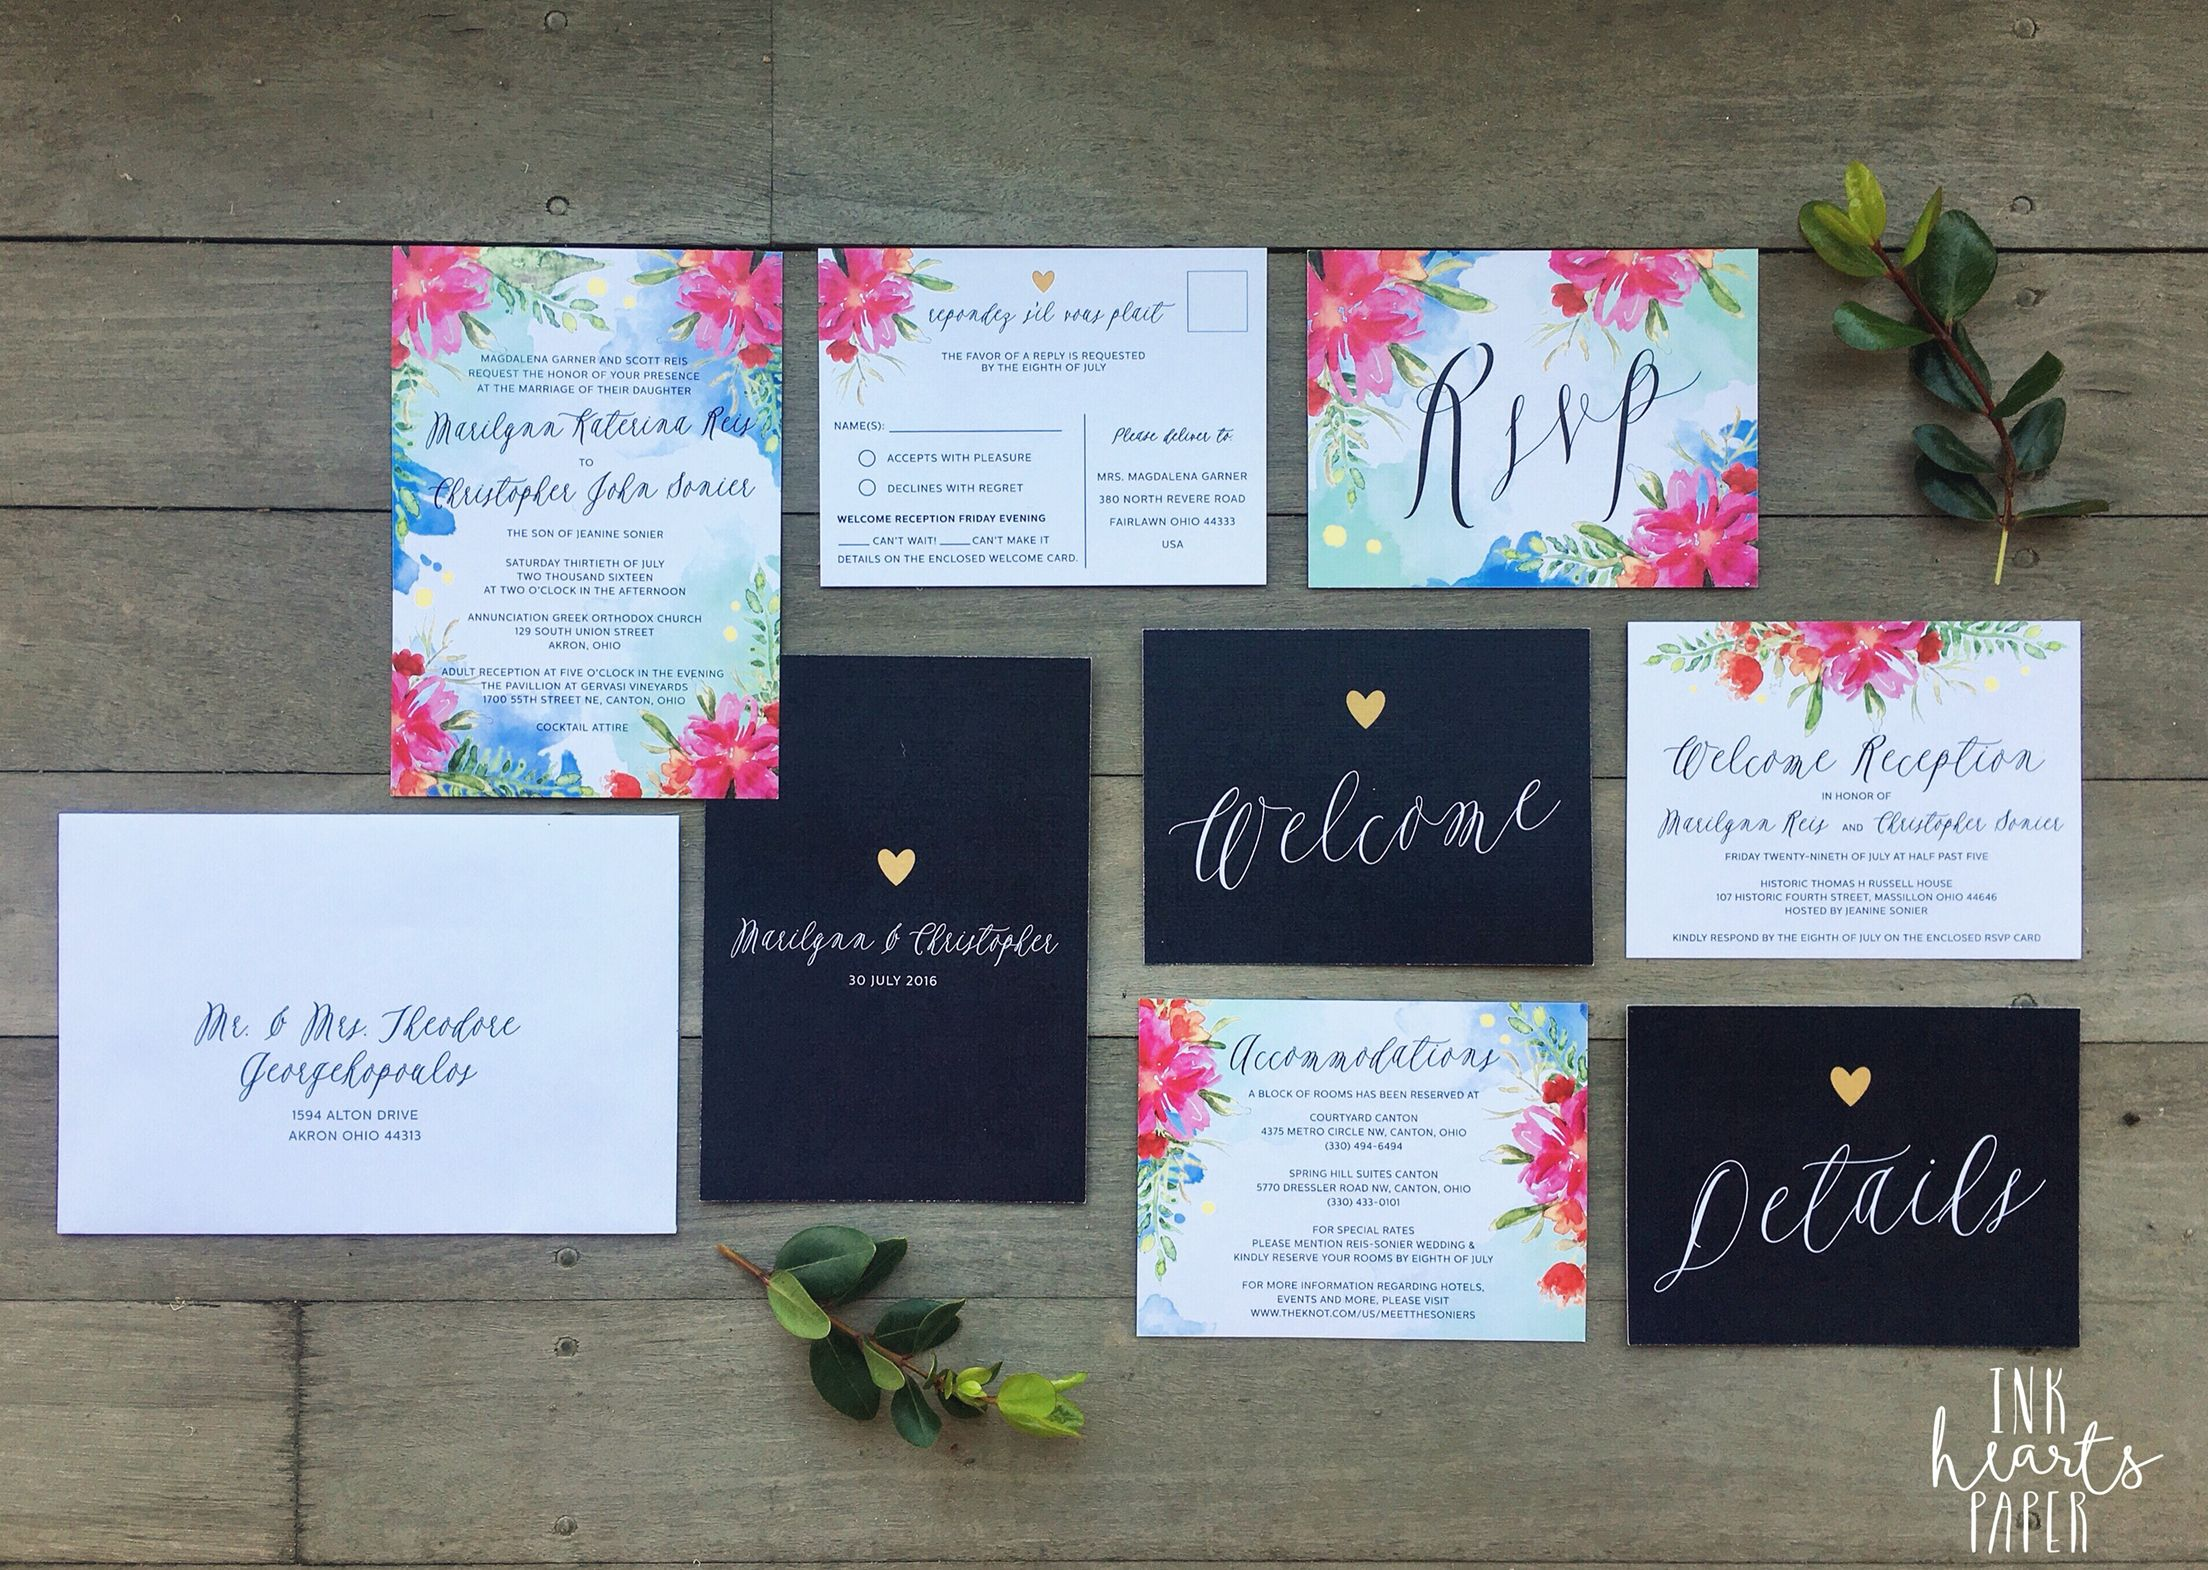 wedding invitations map%0A Wedding engagement invitation stationery simple modern classy professional  calligraphy bright floral watercolor watercolour tropical island Hawaii